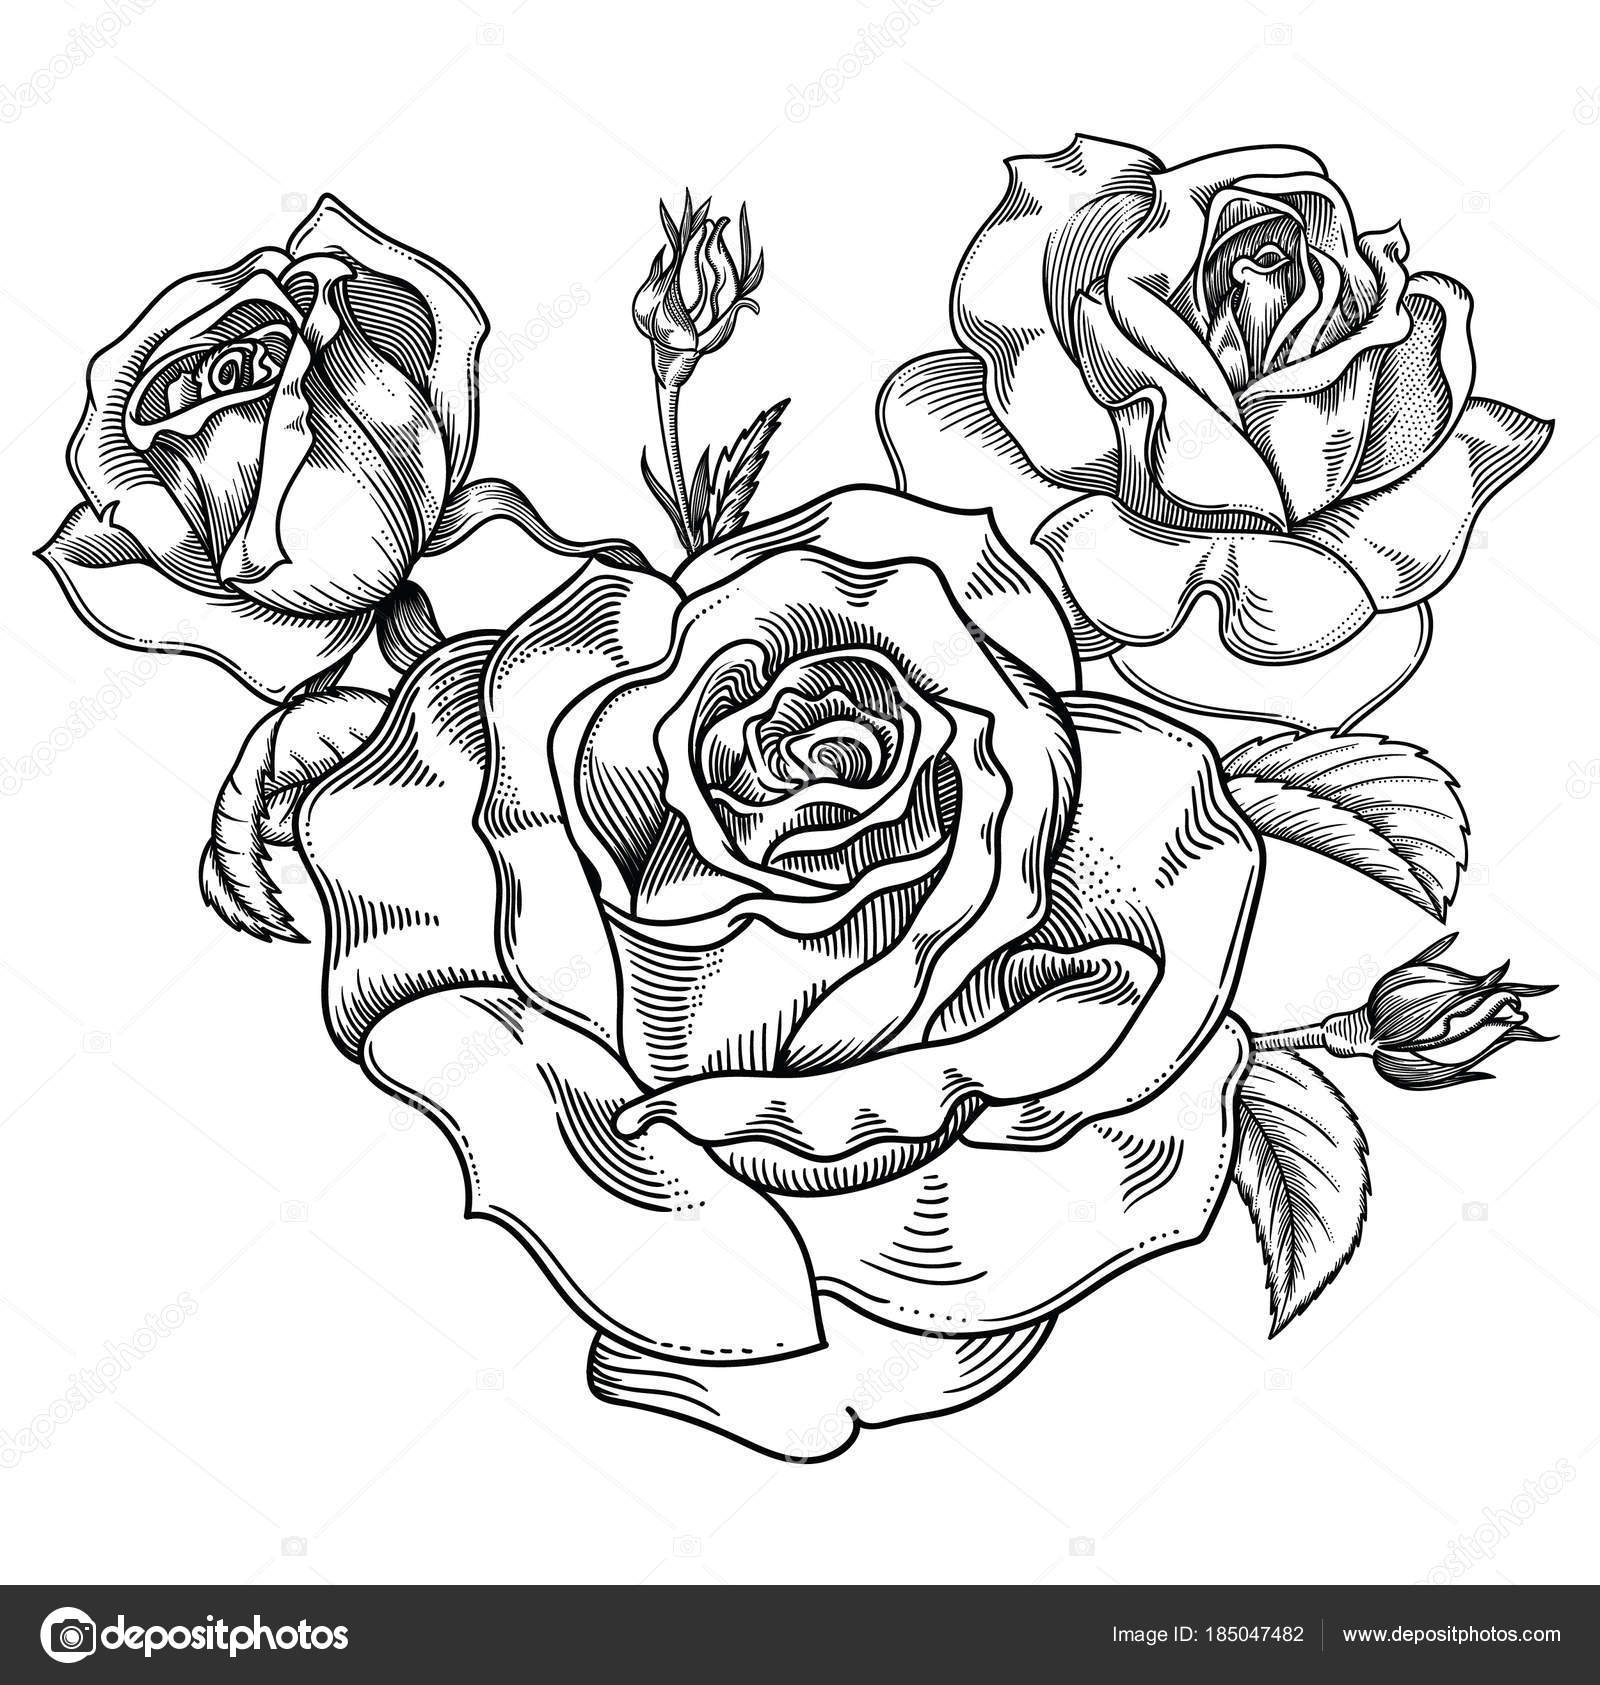 Blooming Black And White Sketch Roses Flowers Detailed Hand Drawn